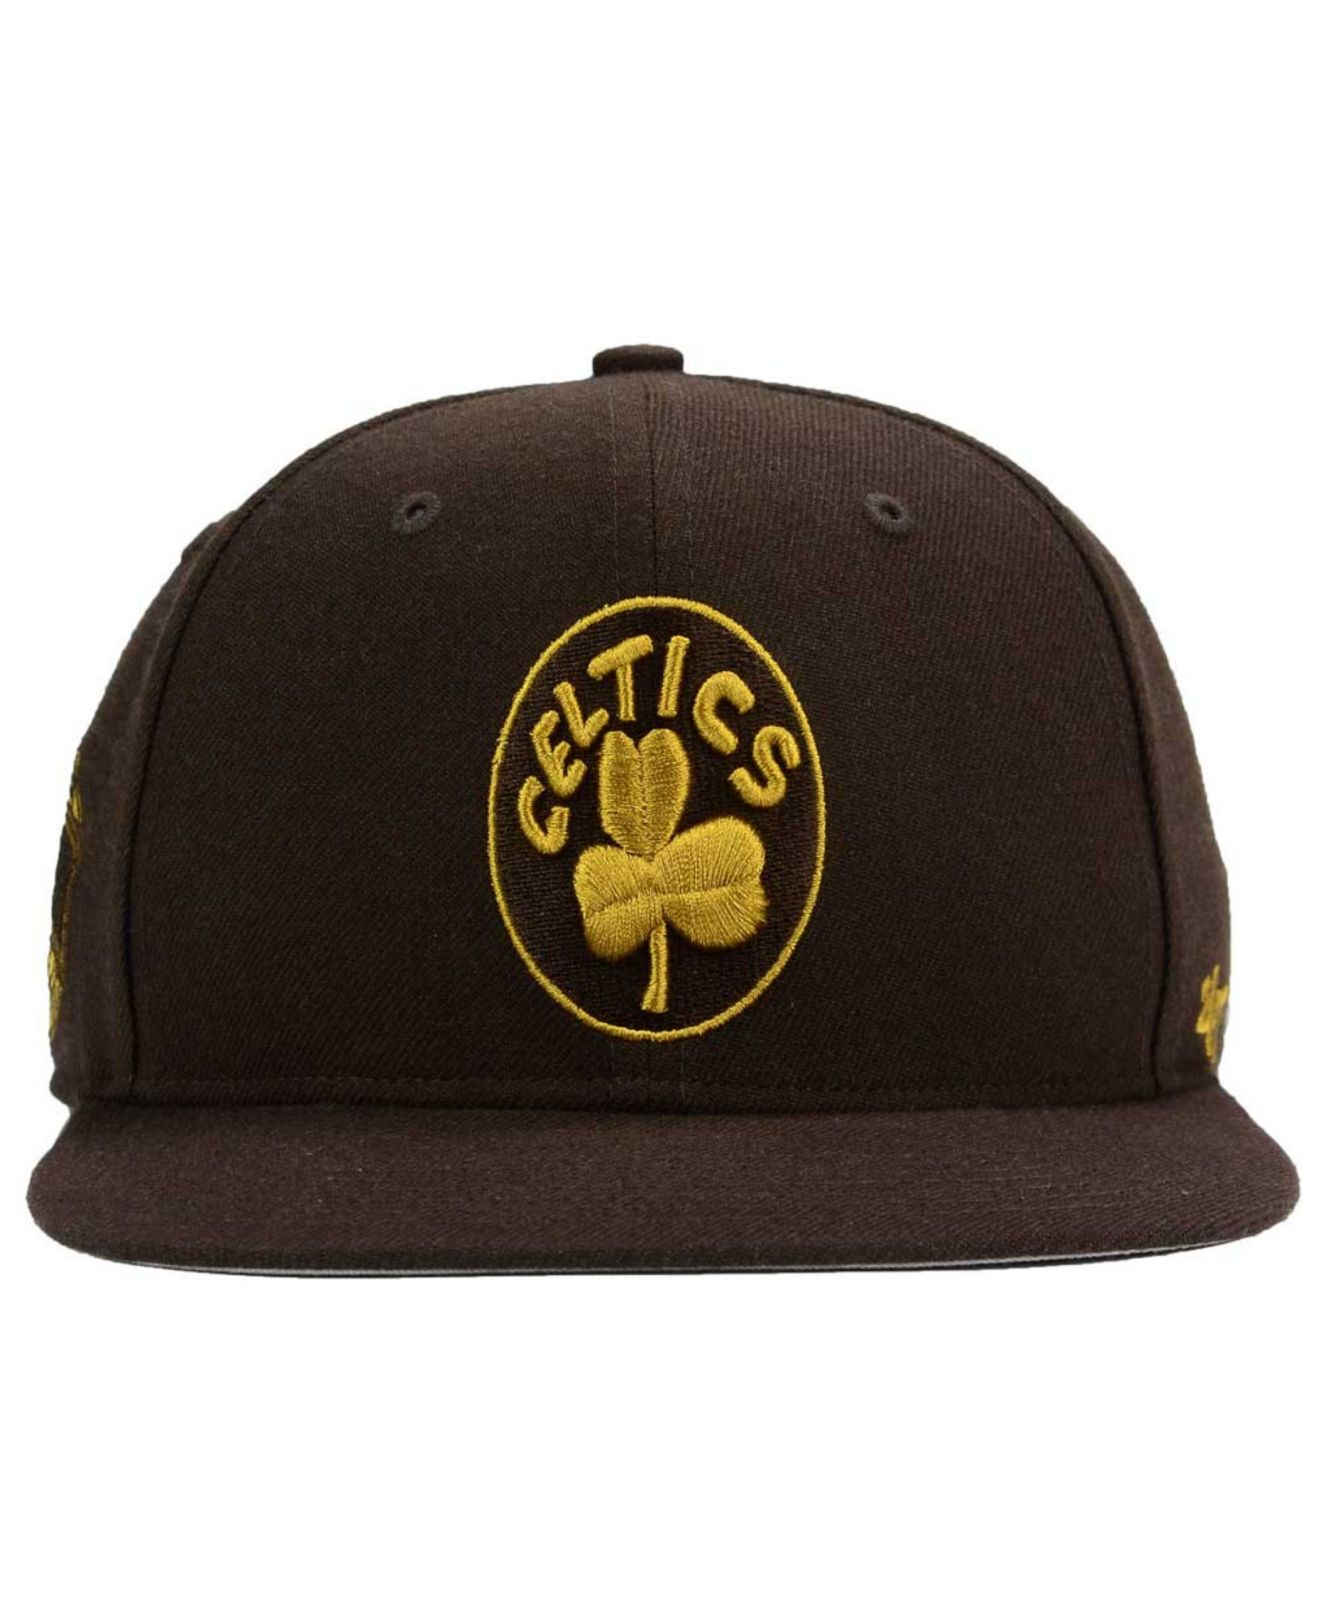 new style b41fb f4877 Lyst - 47 Brand Boston Celtics Sure Shot Snapback Cap in Brown for Men